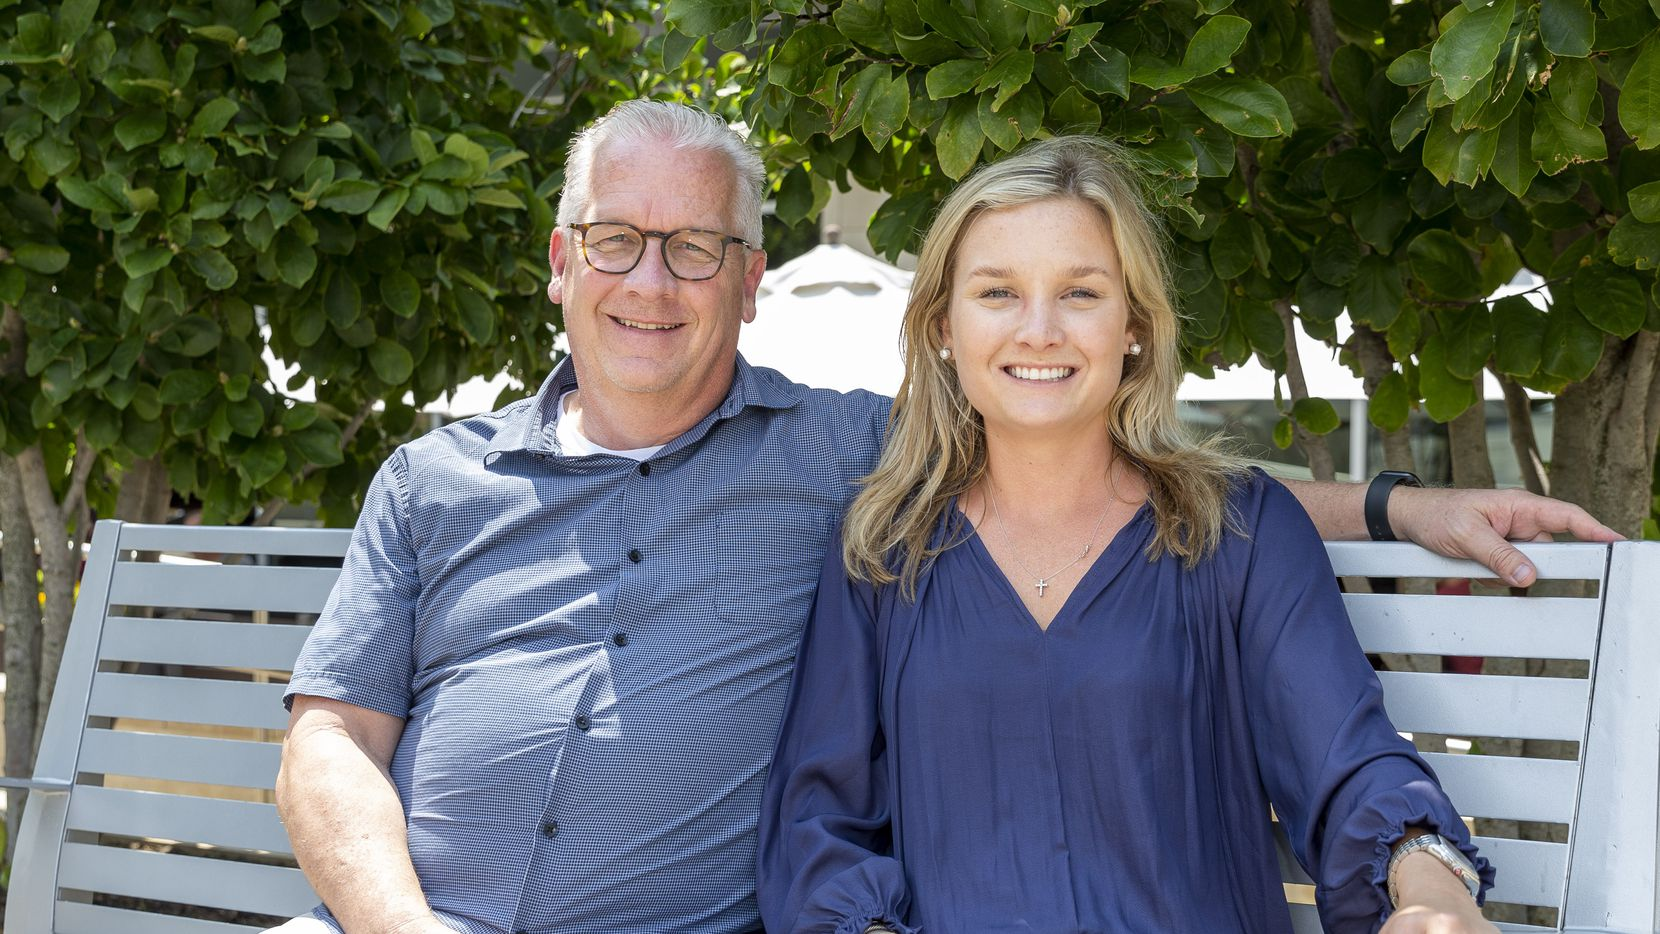 Joel Williams helped his daughter, Natalie, out during the pandemic by letting her move back in with him while she looked for a job. Young adults across the U.S. leaned on their parents during the unprecedented pandemic, leading to closer relationships.